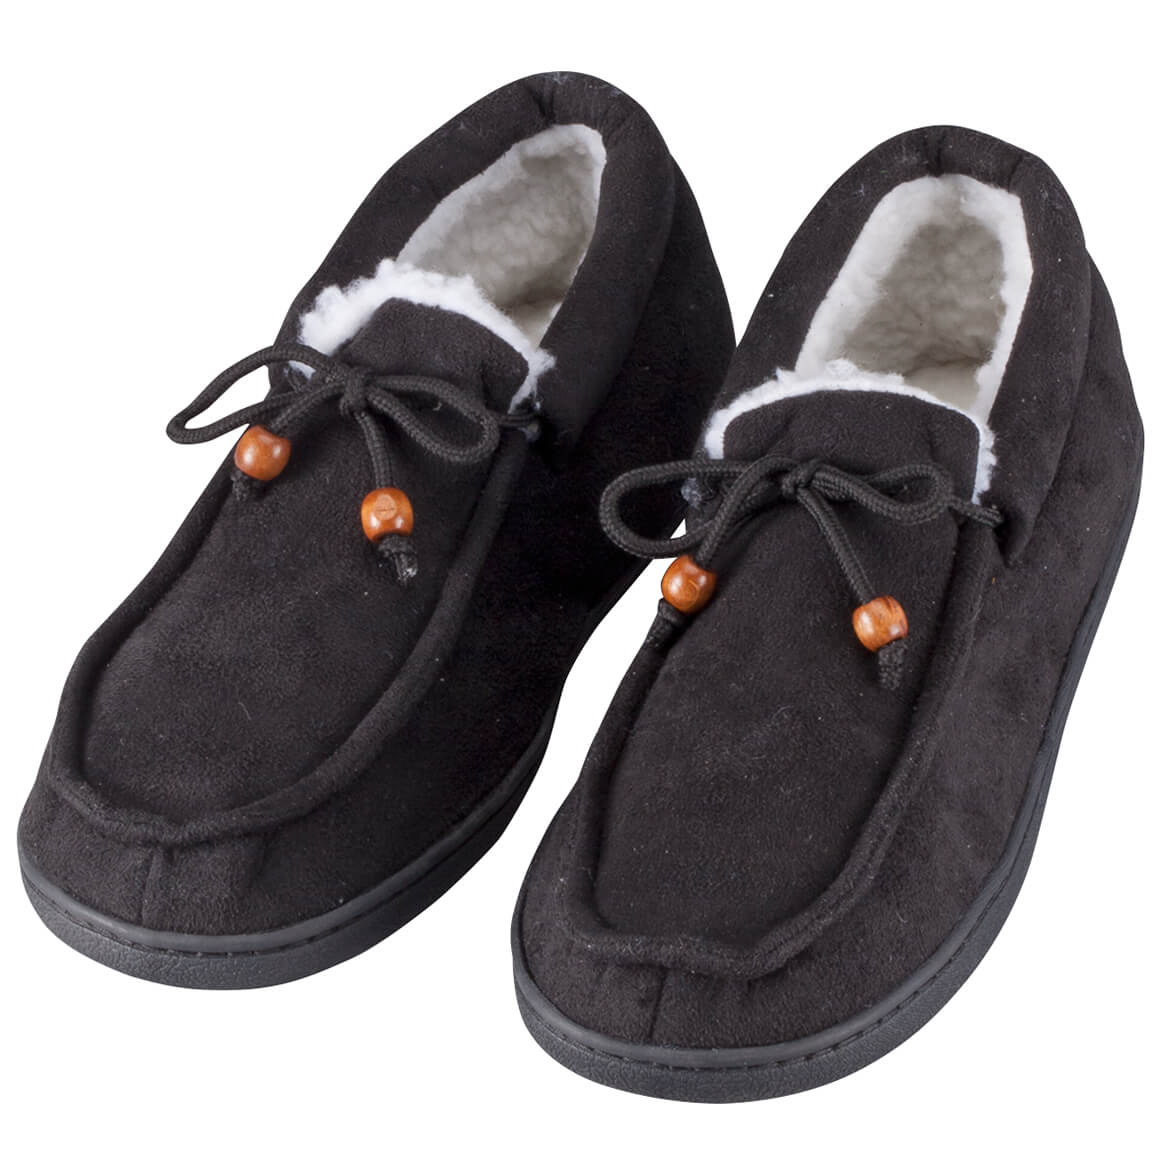 Mens Indoor/Outdoor Memory Foam Moccasins-360023